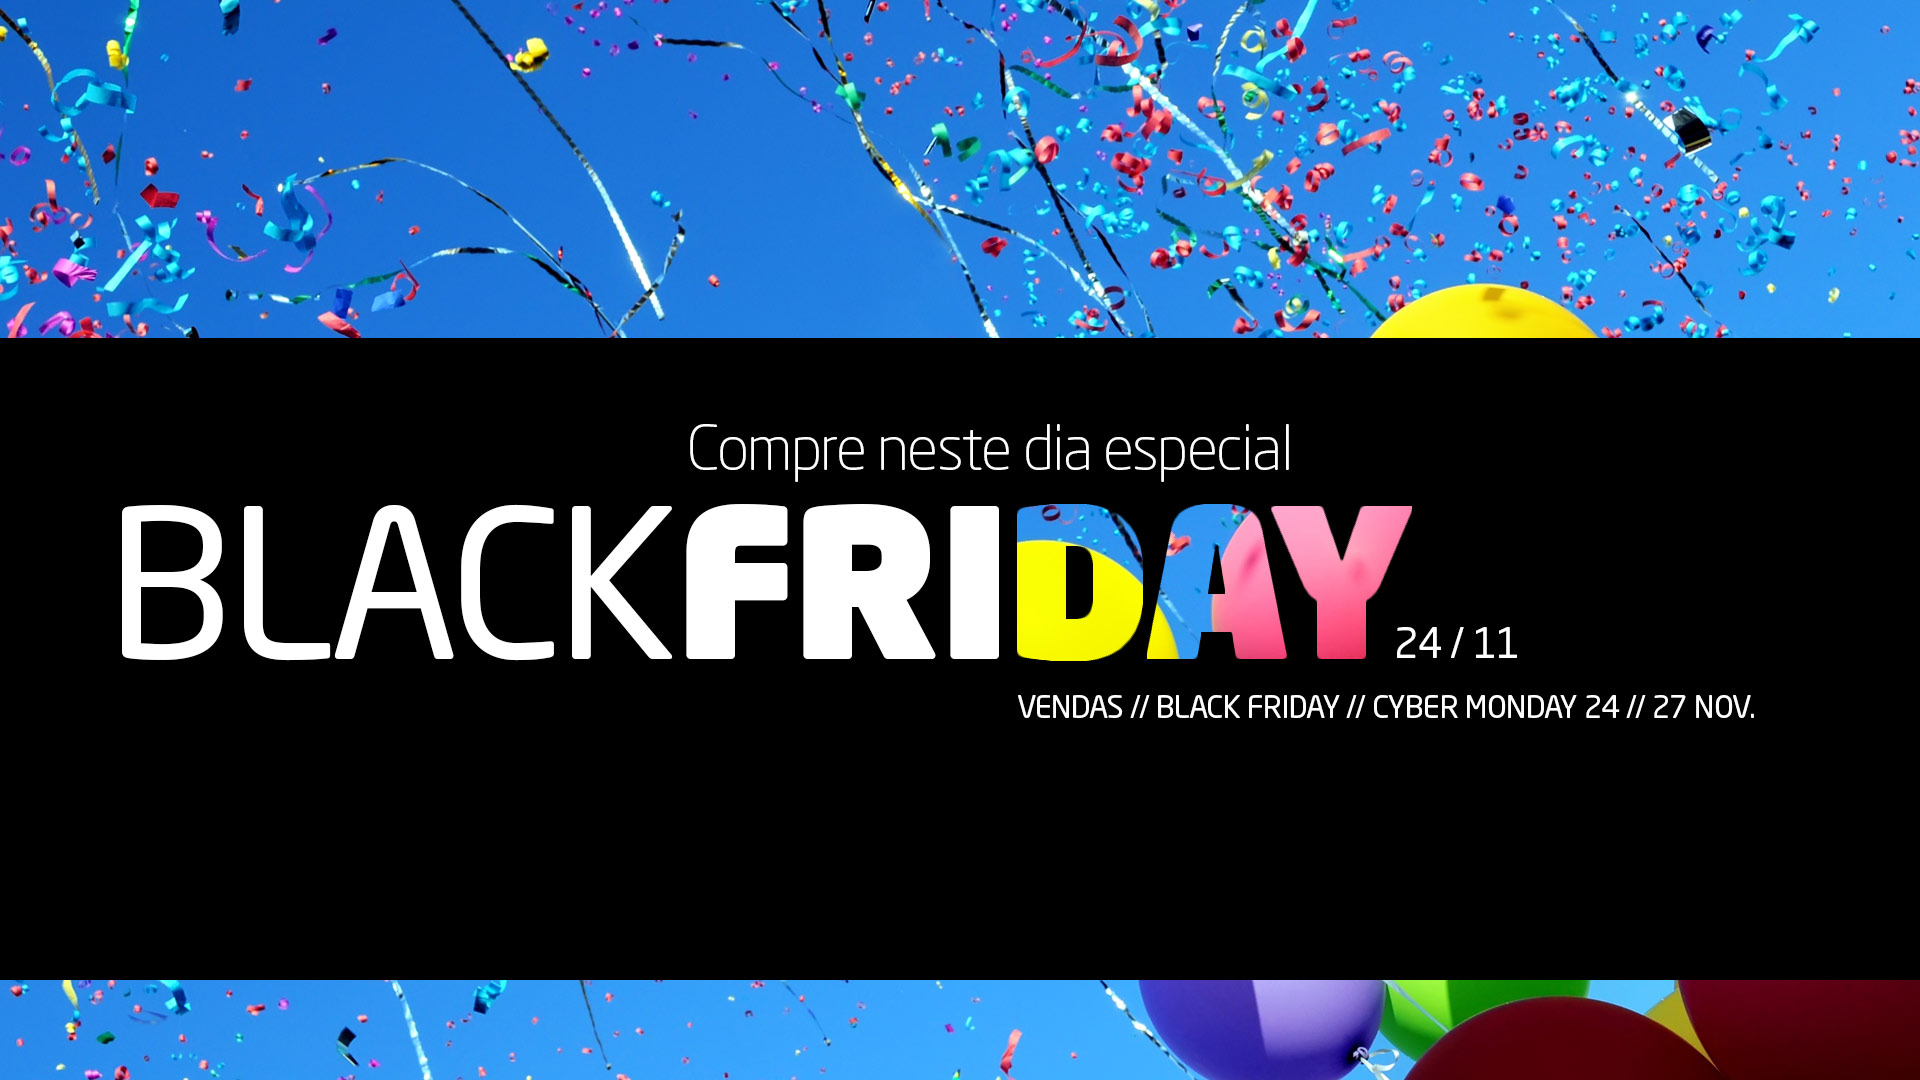 Black Friday Frankfurt 2017 Campaign Content Azores Airlines